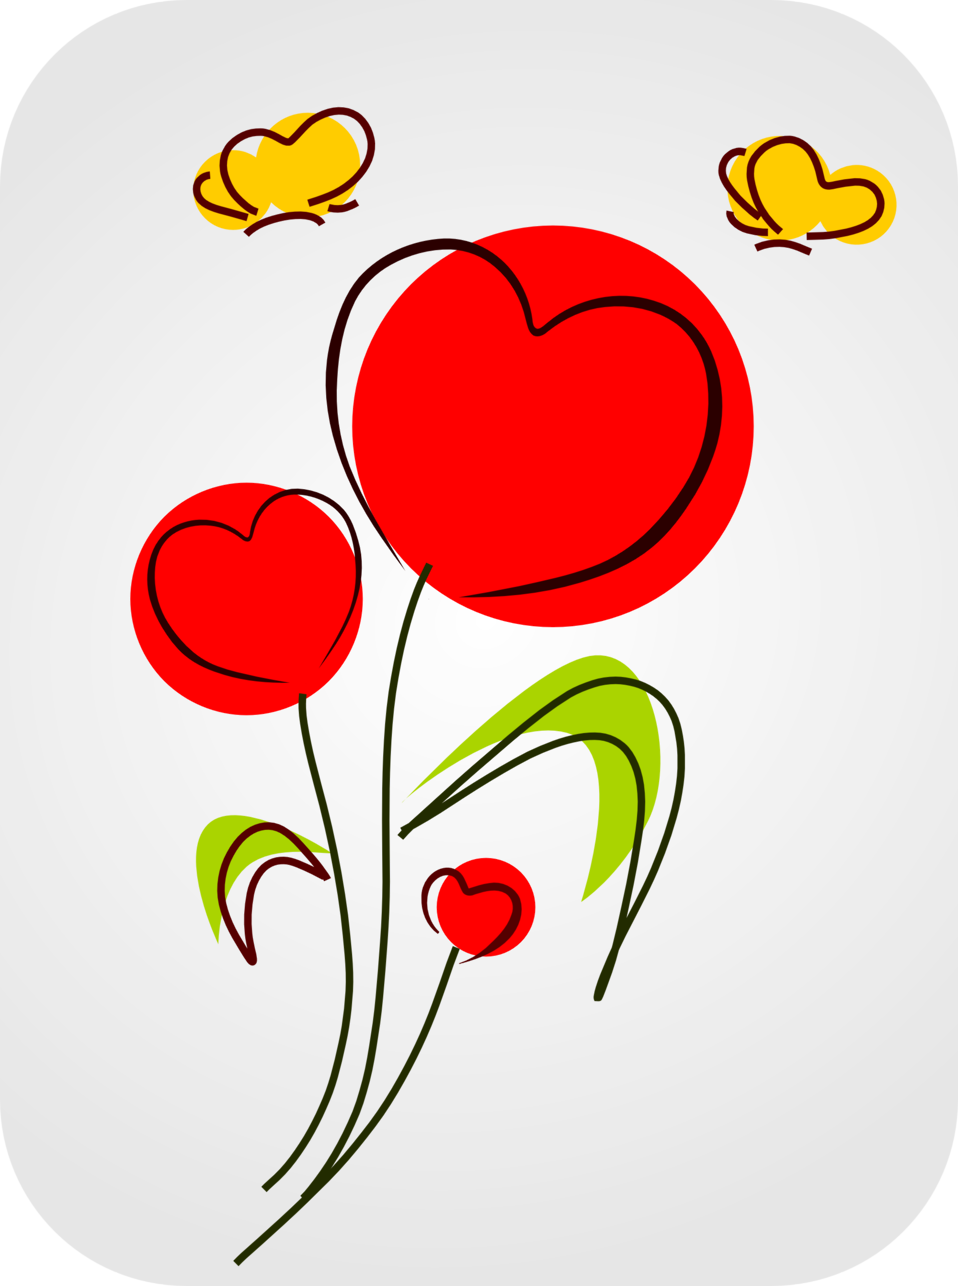 Clipart smiling flower banner free download Public Domain Clip Art Image | Flowers with Hearts | ID ... banner free download